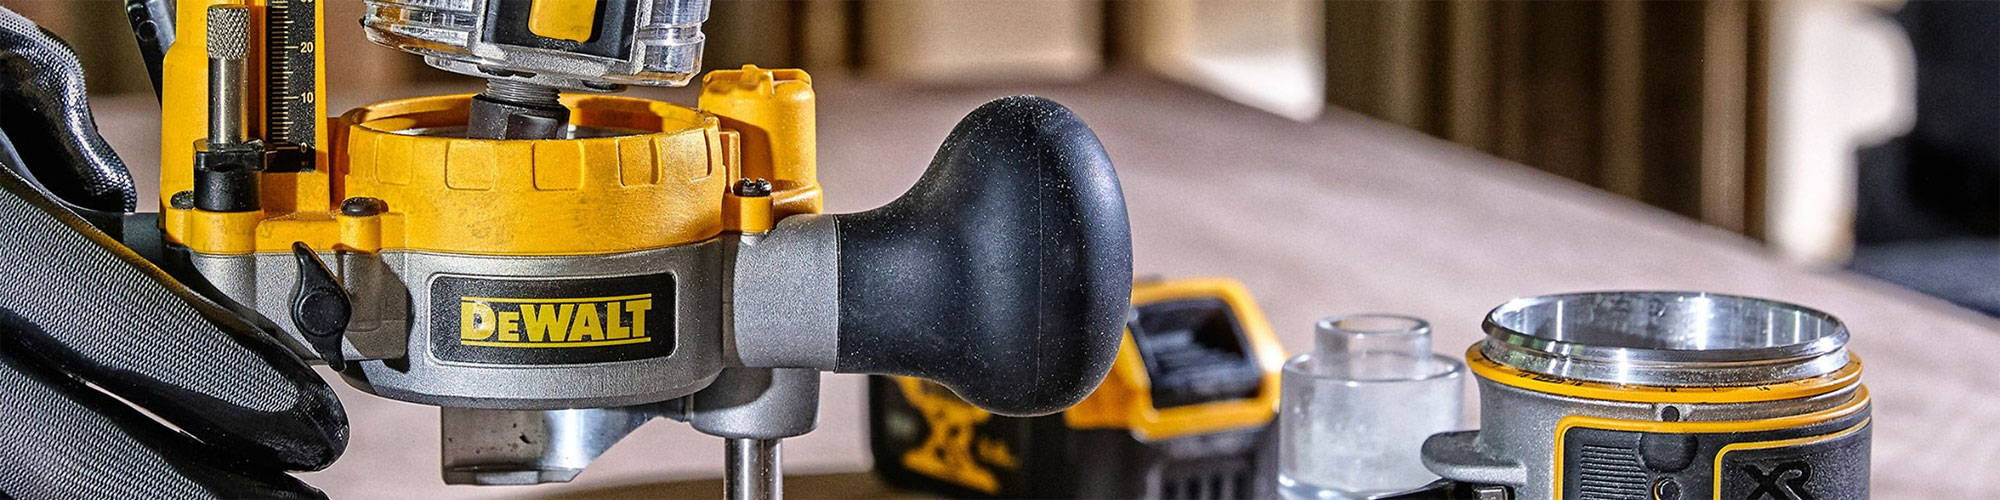 What to look for in a dewalt router